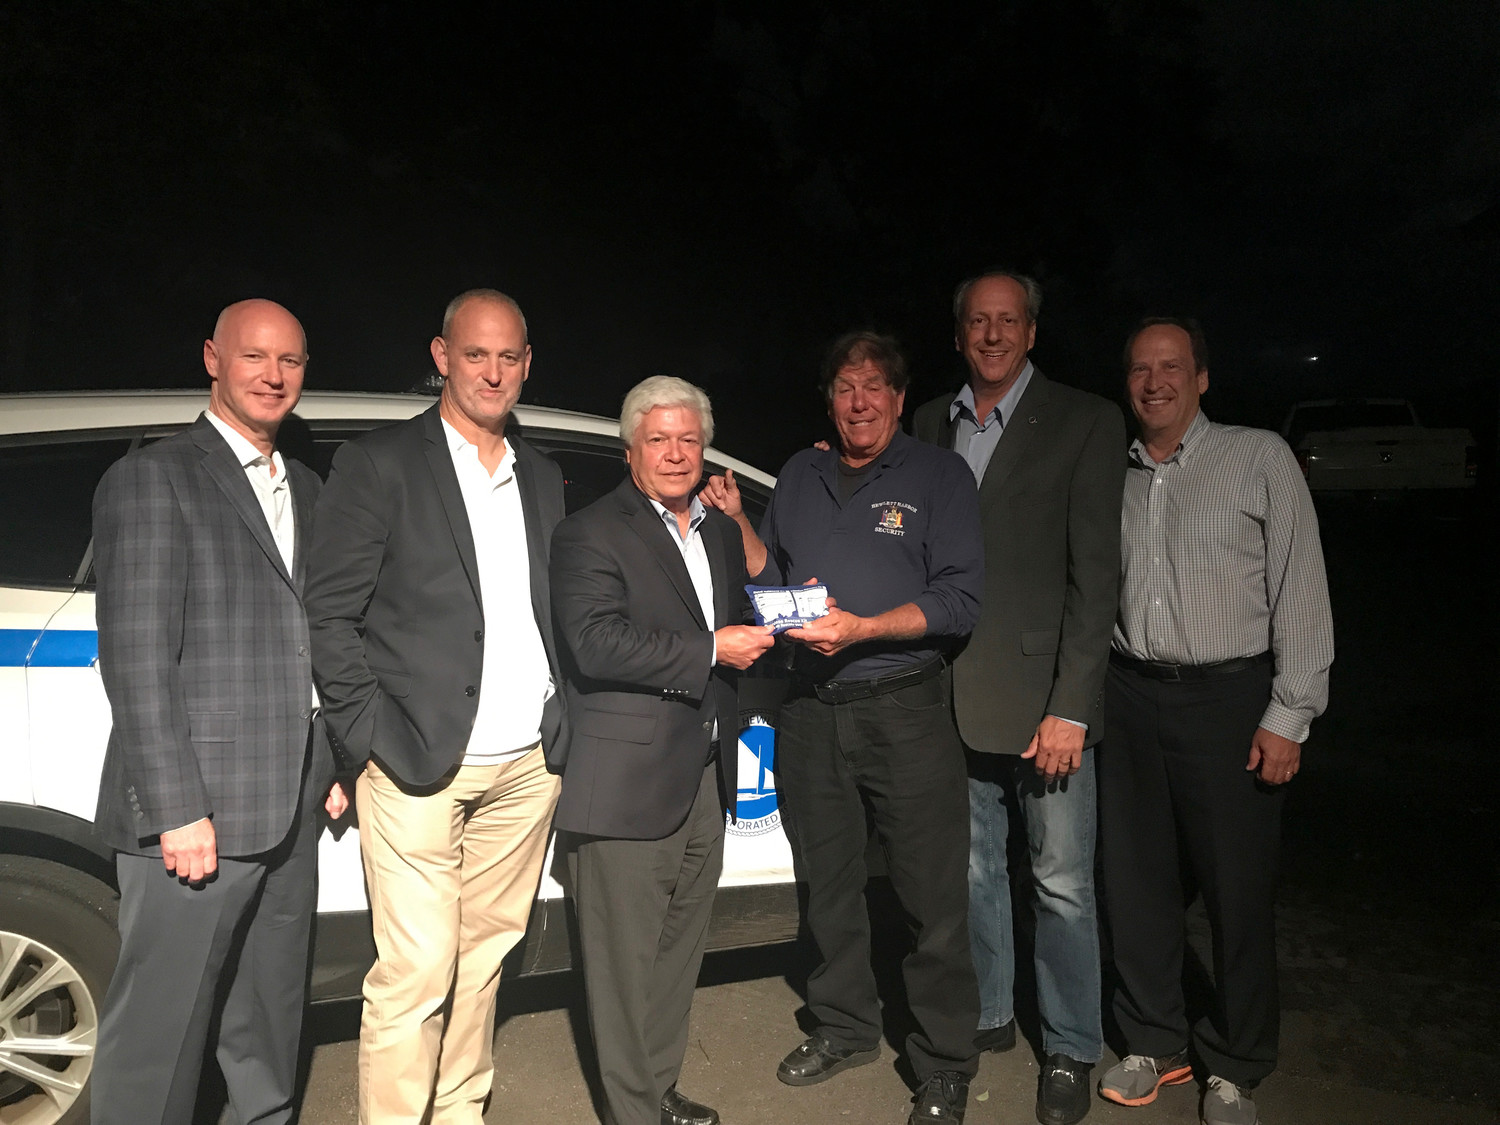 Hewlett Harbor village outfitted their security patrol with Narcan units. From left were Jonathan Polakoff, trustee/fire commissioner; Leonard Oppenheimer, deputy mayor; Mark Weiss, mayor; Gene Condrill, security; Thomas Cohen, trustee/police commissioner; and Kenneth Kornblau, trustee/deputy police commissioner.